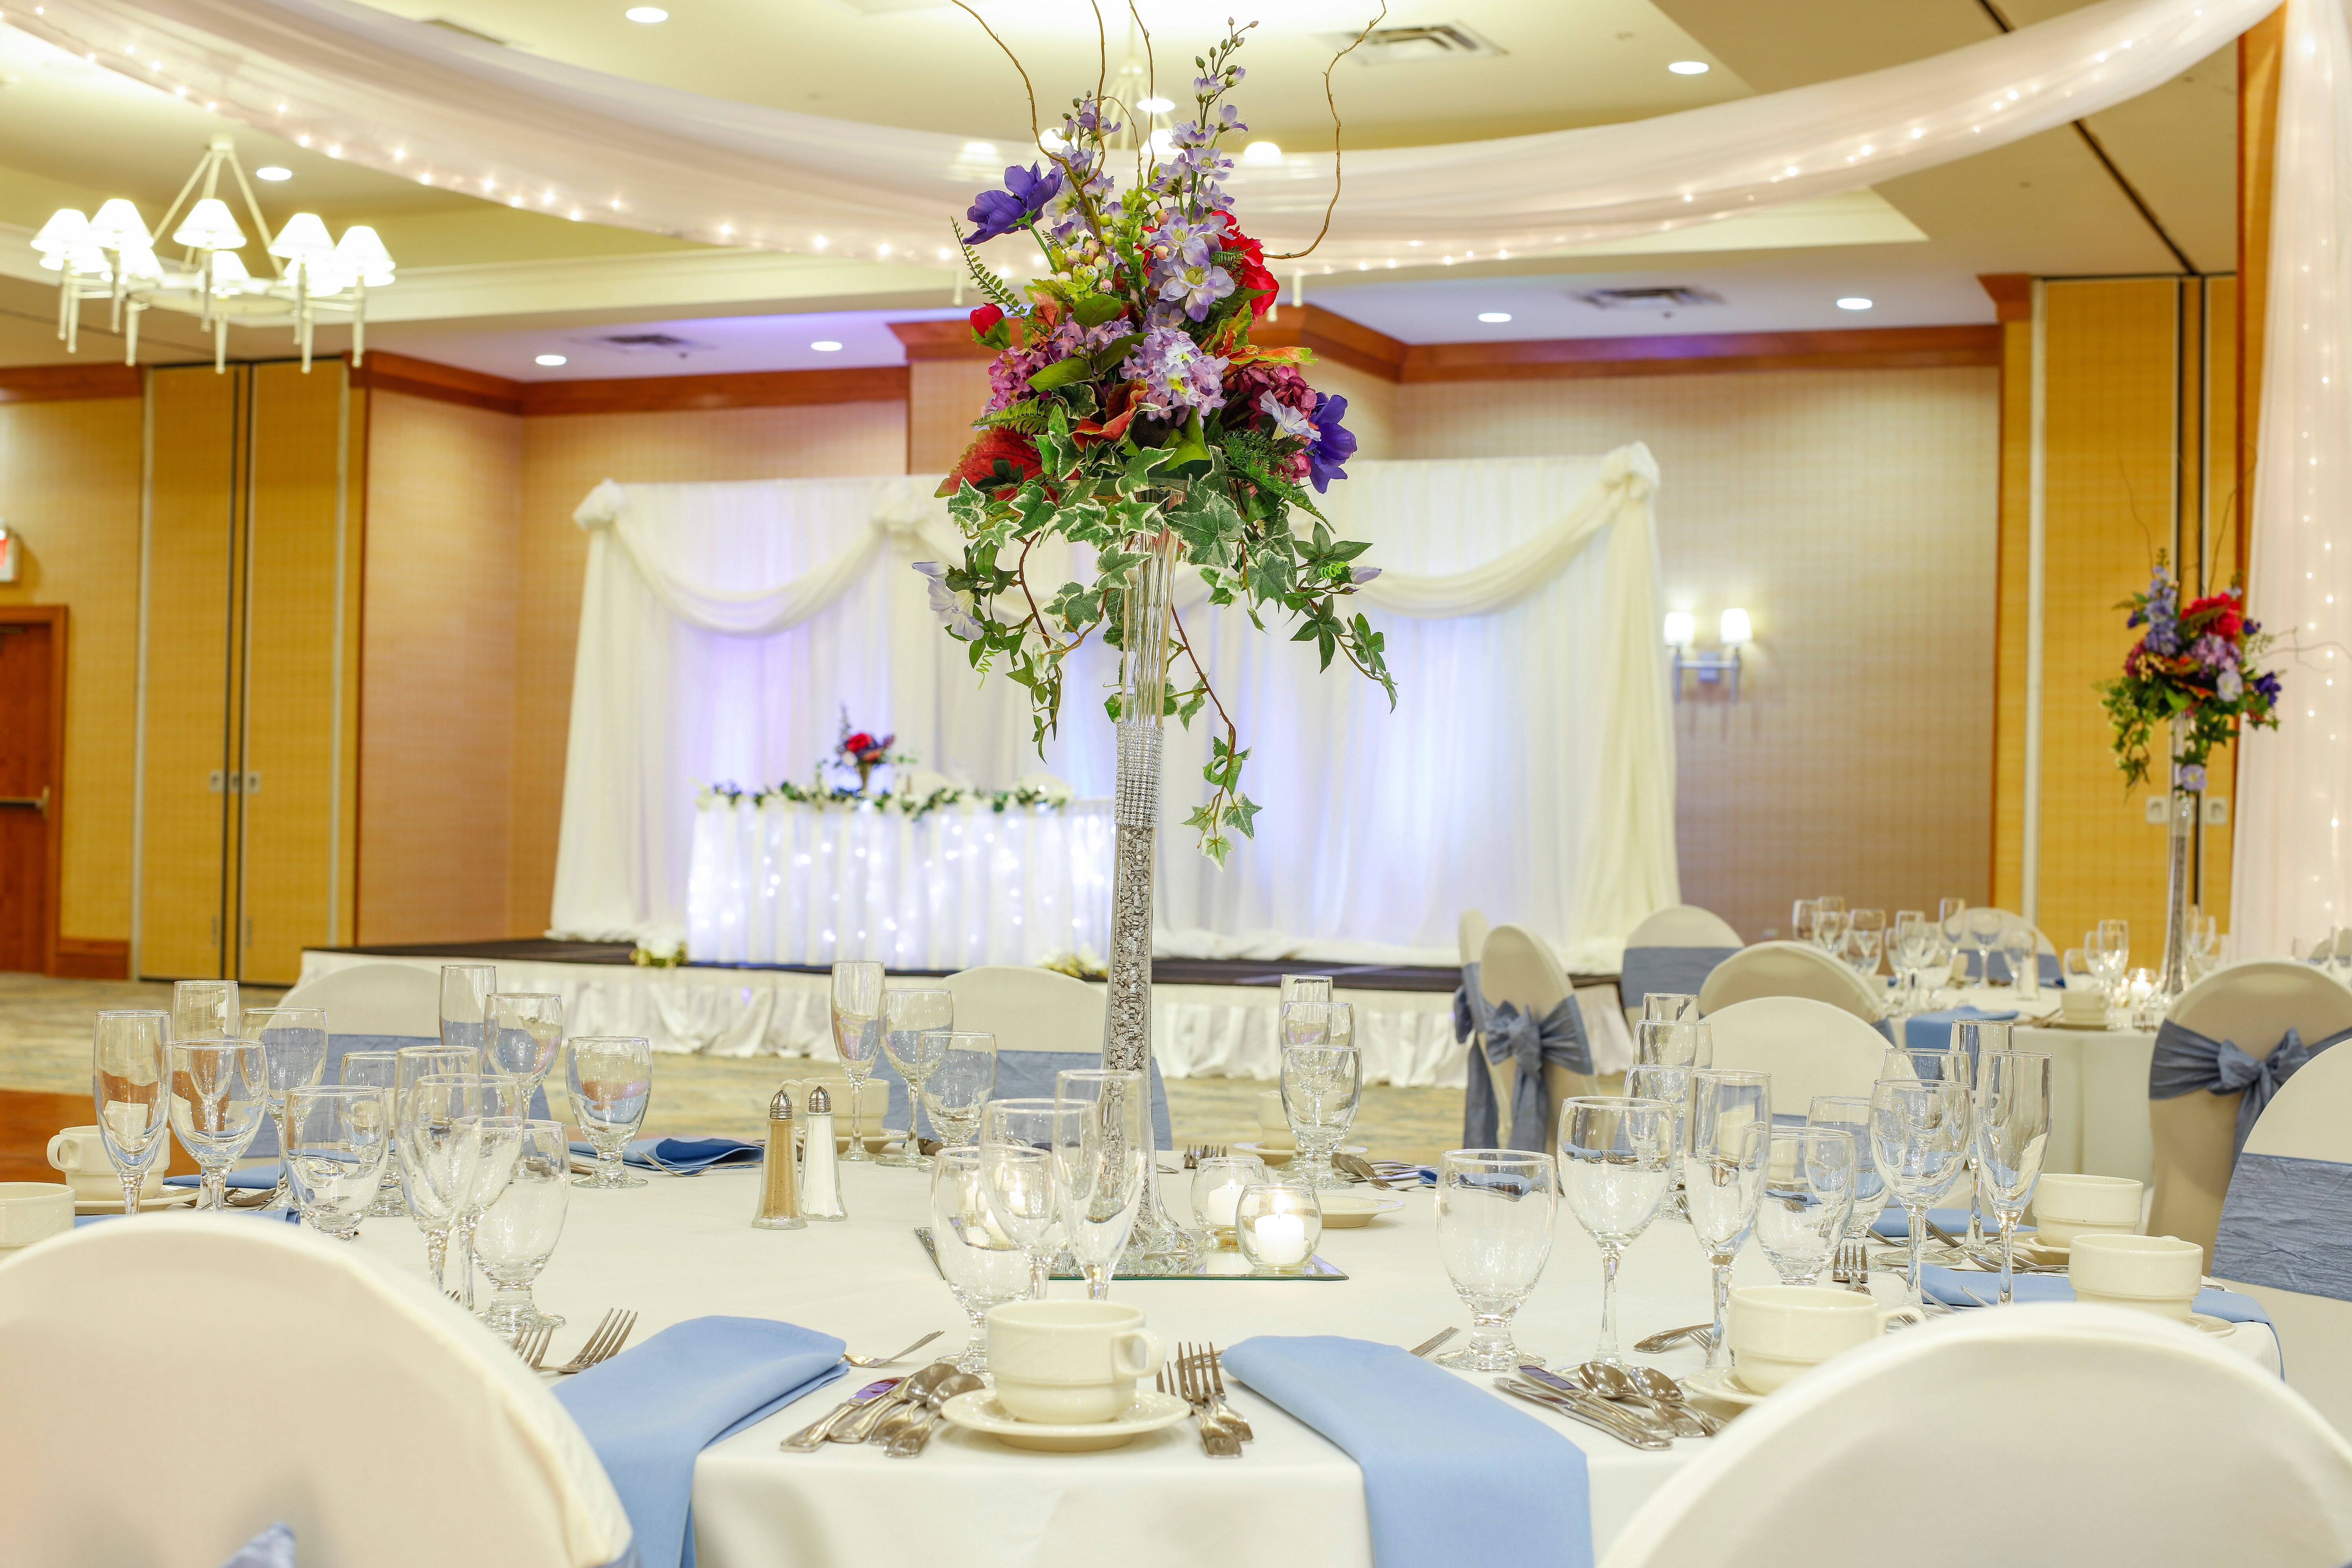 Wedding reception venues in rochester ny the knot doubletree by hilton hotel rochester junglespirit Image collections